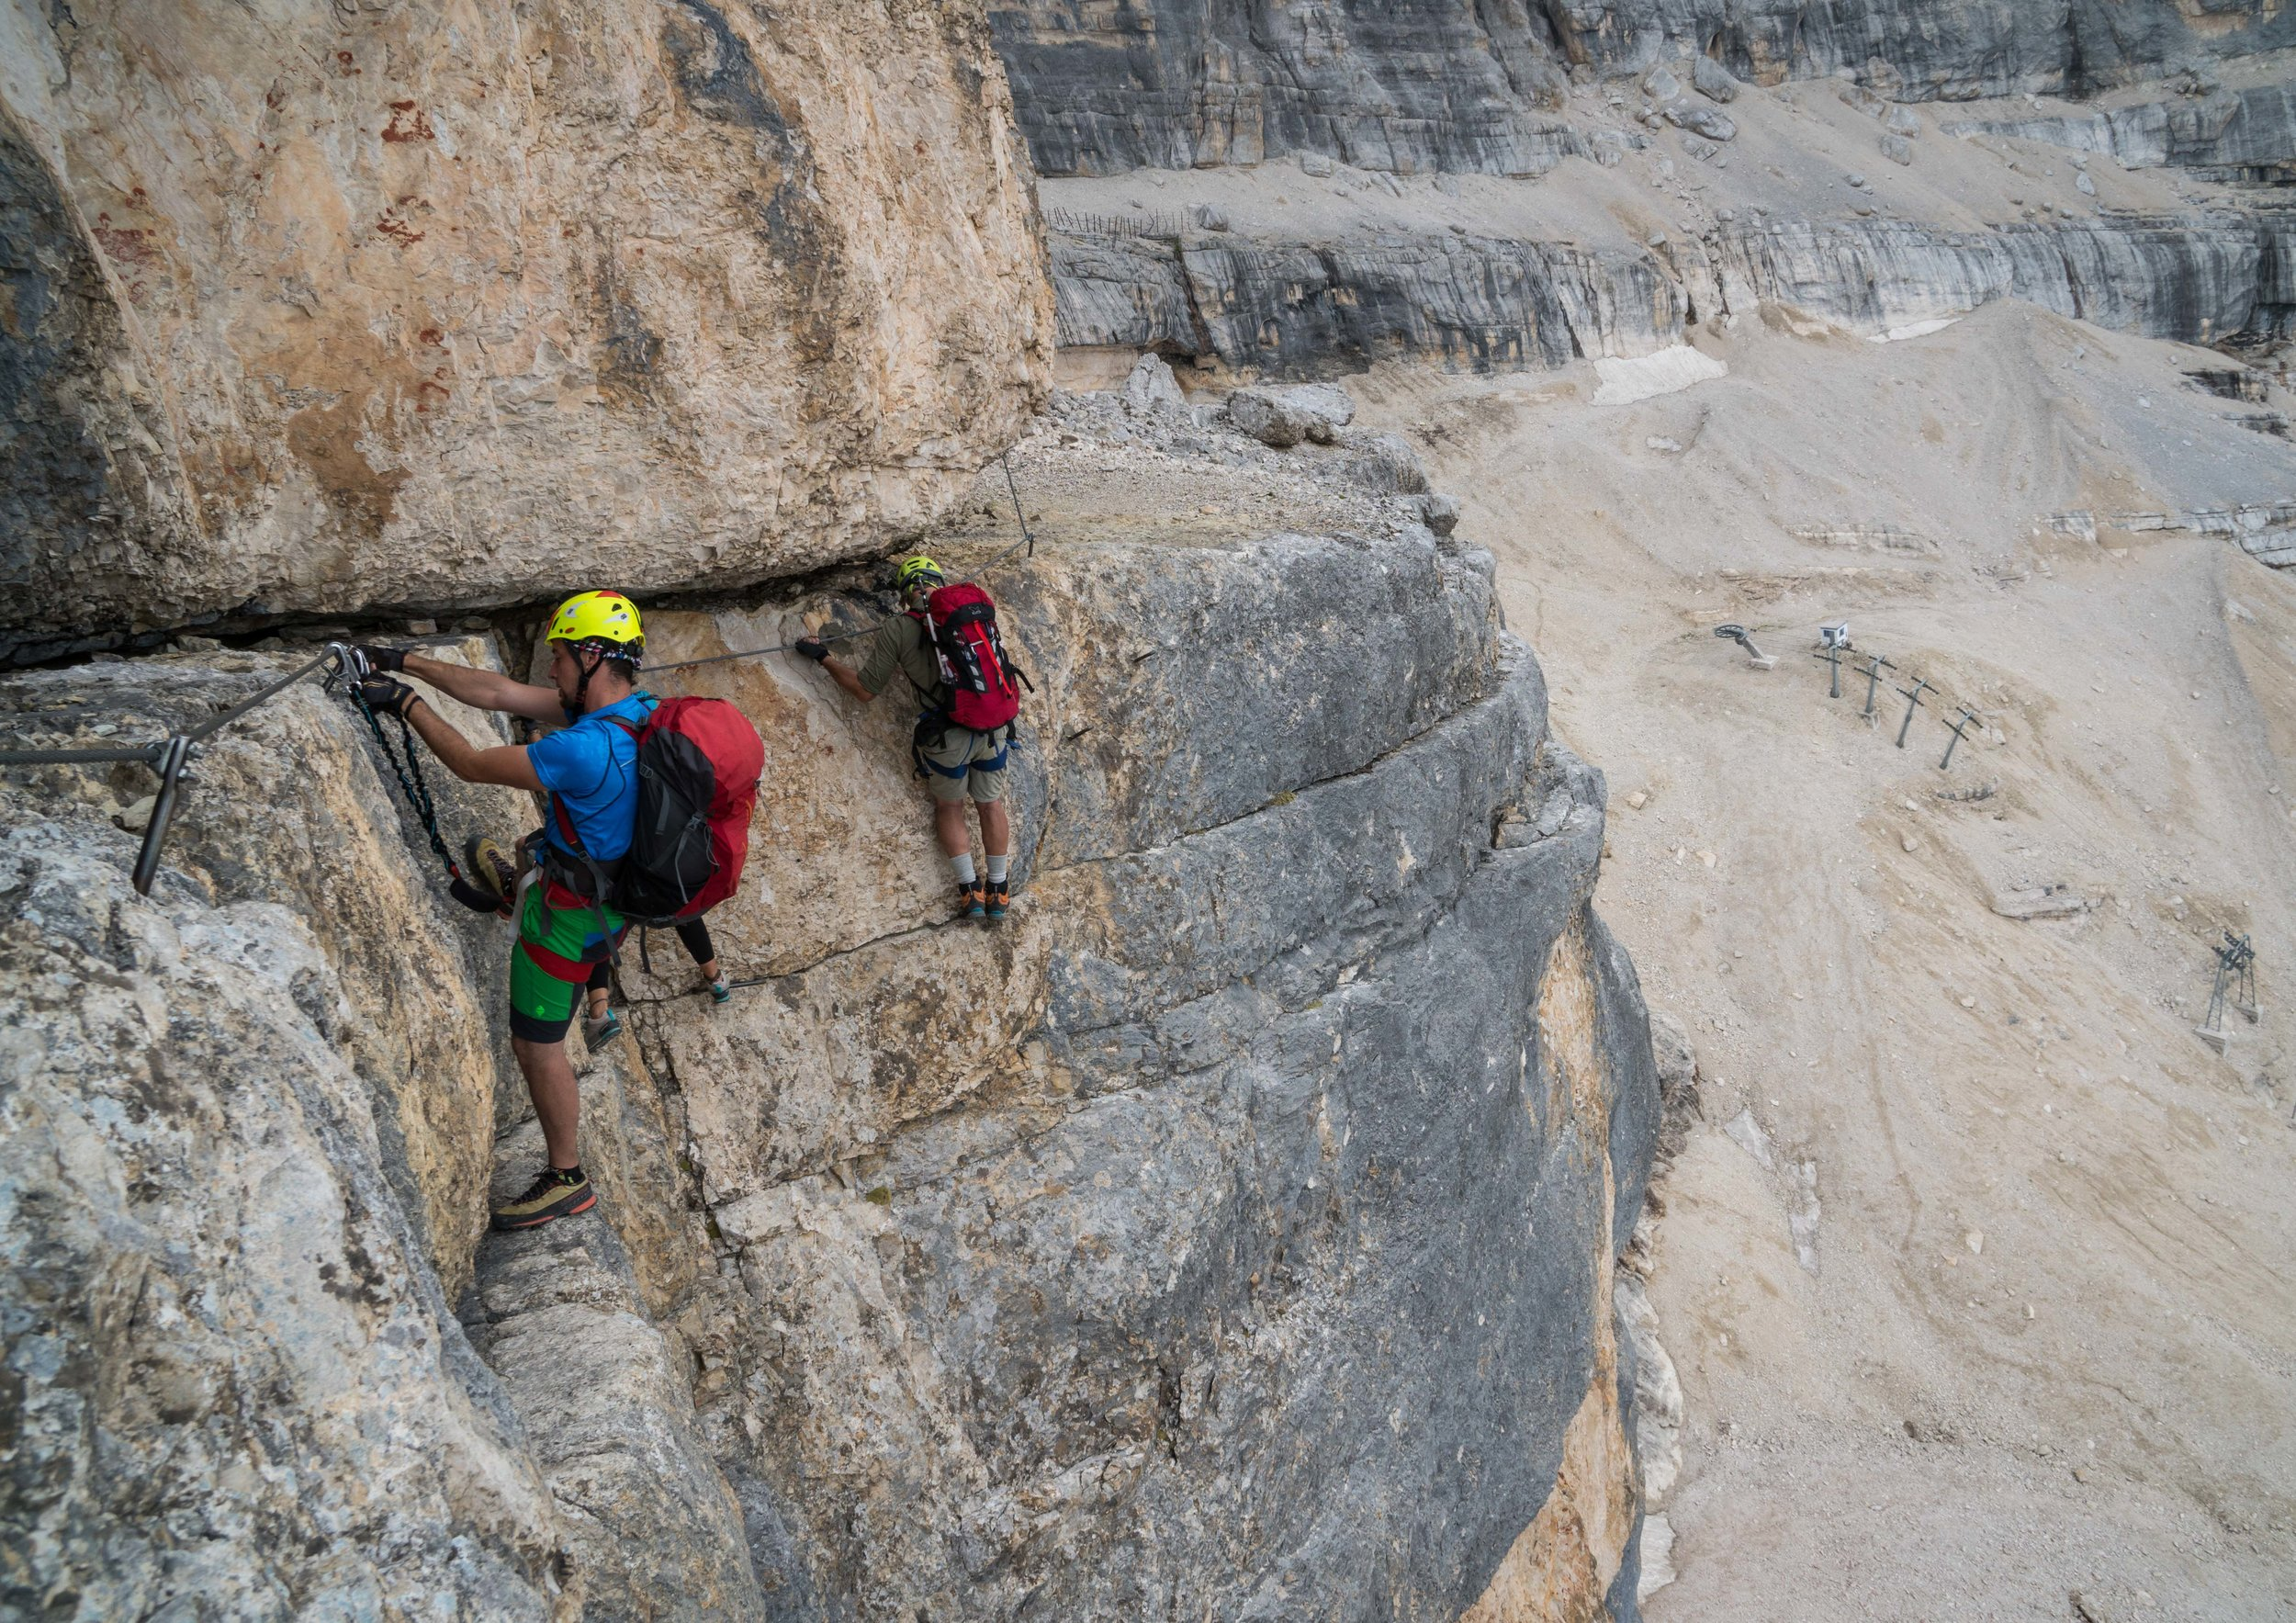 An exposed traverse high above Cortina d'Ampezzo, Italy.